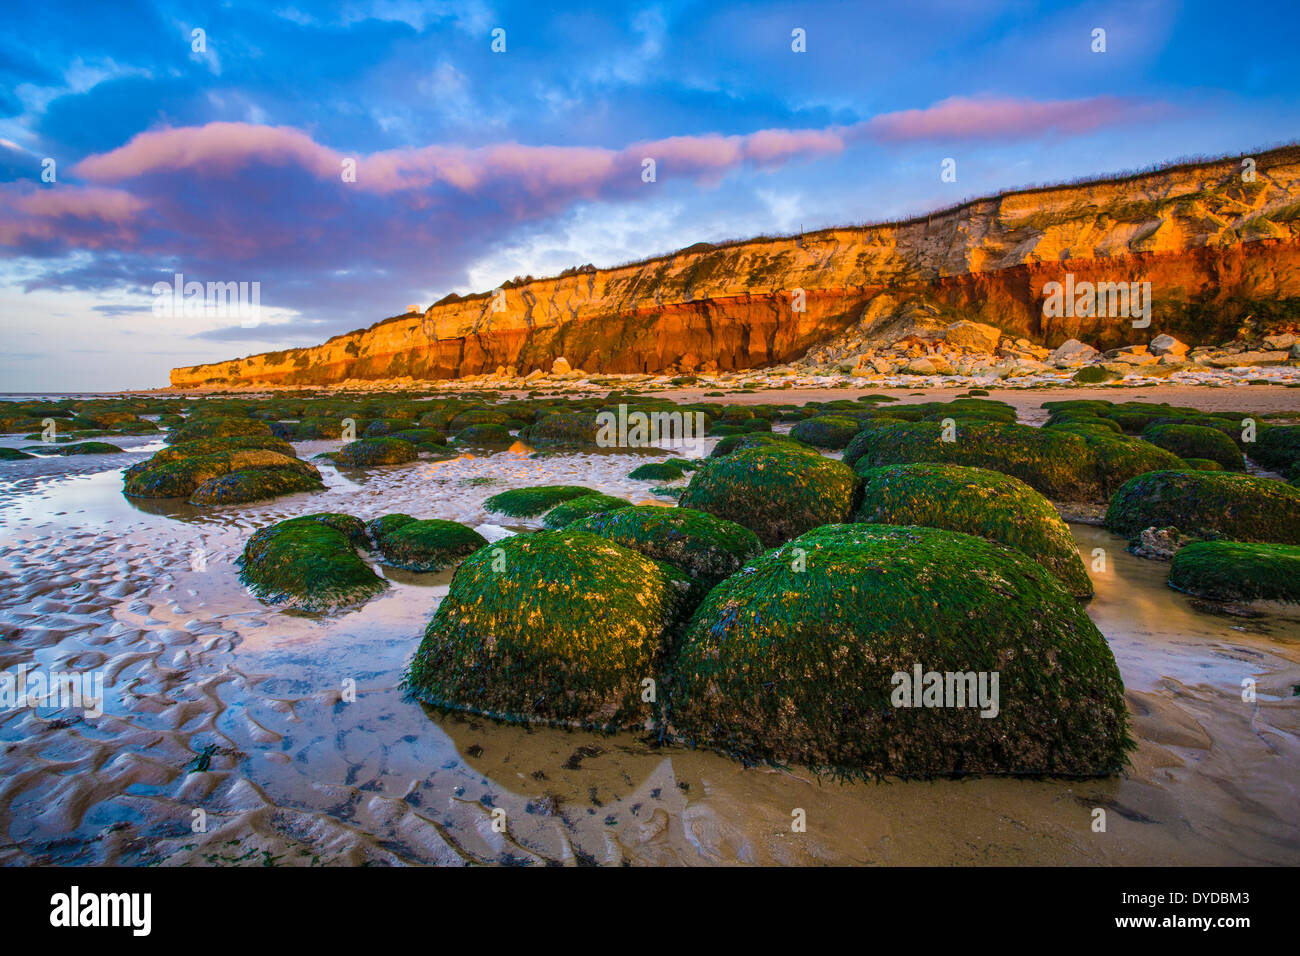 Hunstanton cliffs showing the layers of differnt rock. - Stock Image